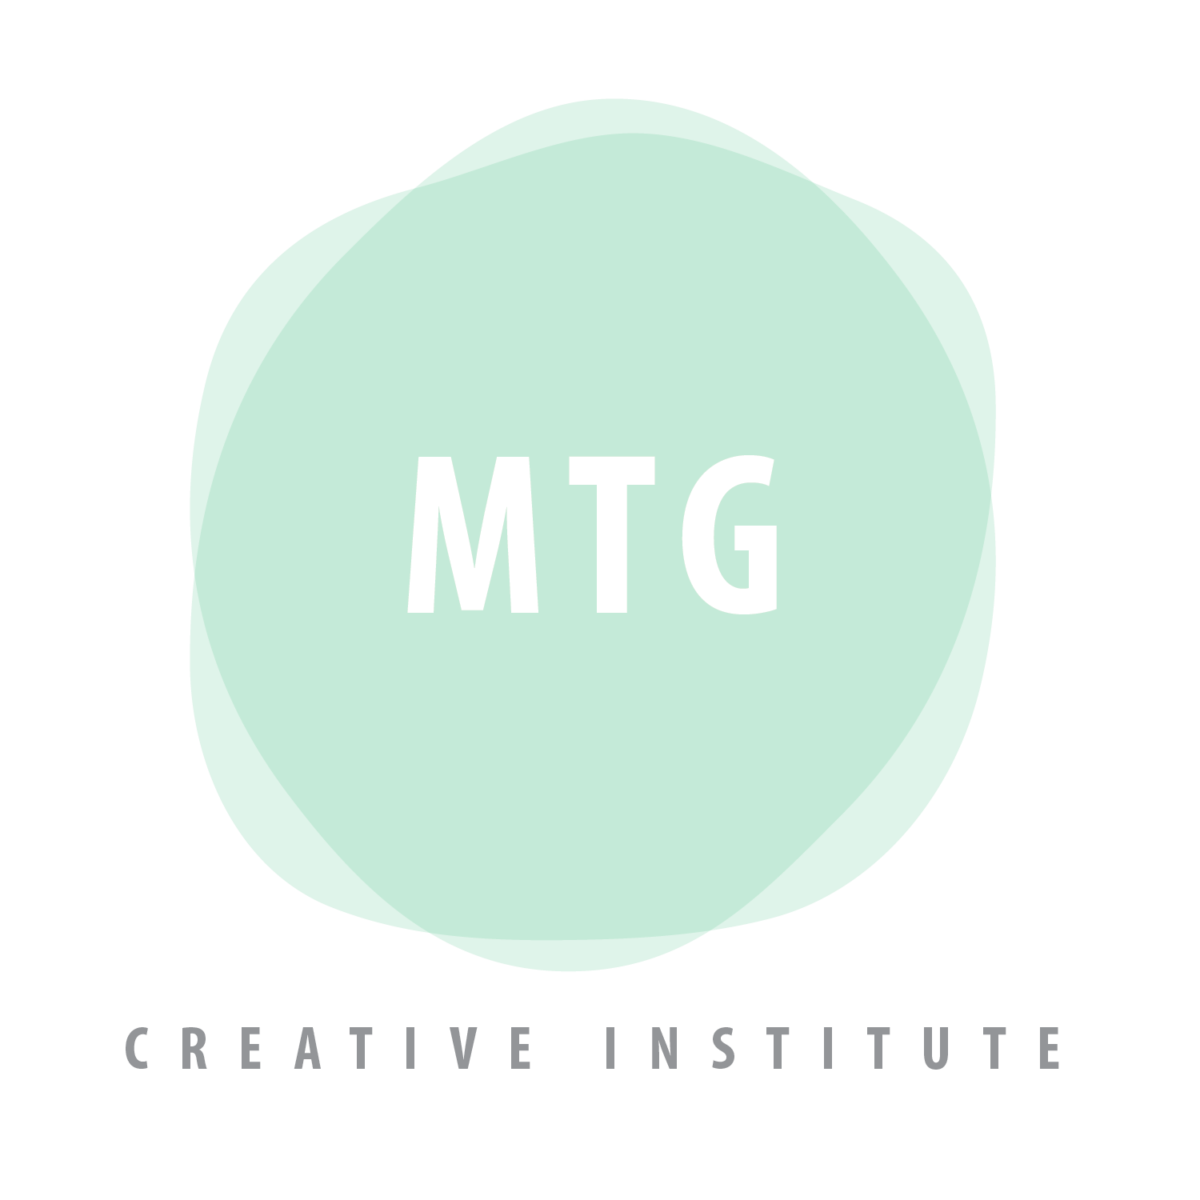 Octane launches monthly entrepreneurship group, MTG Creative Institute